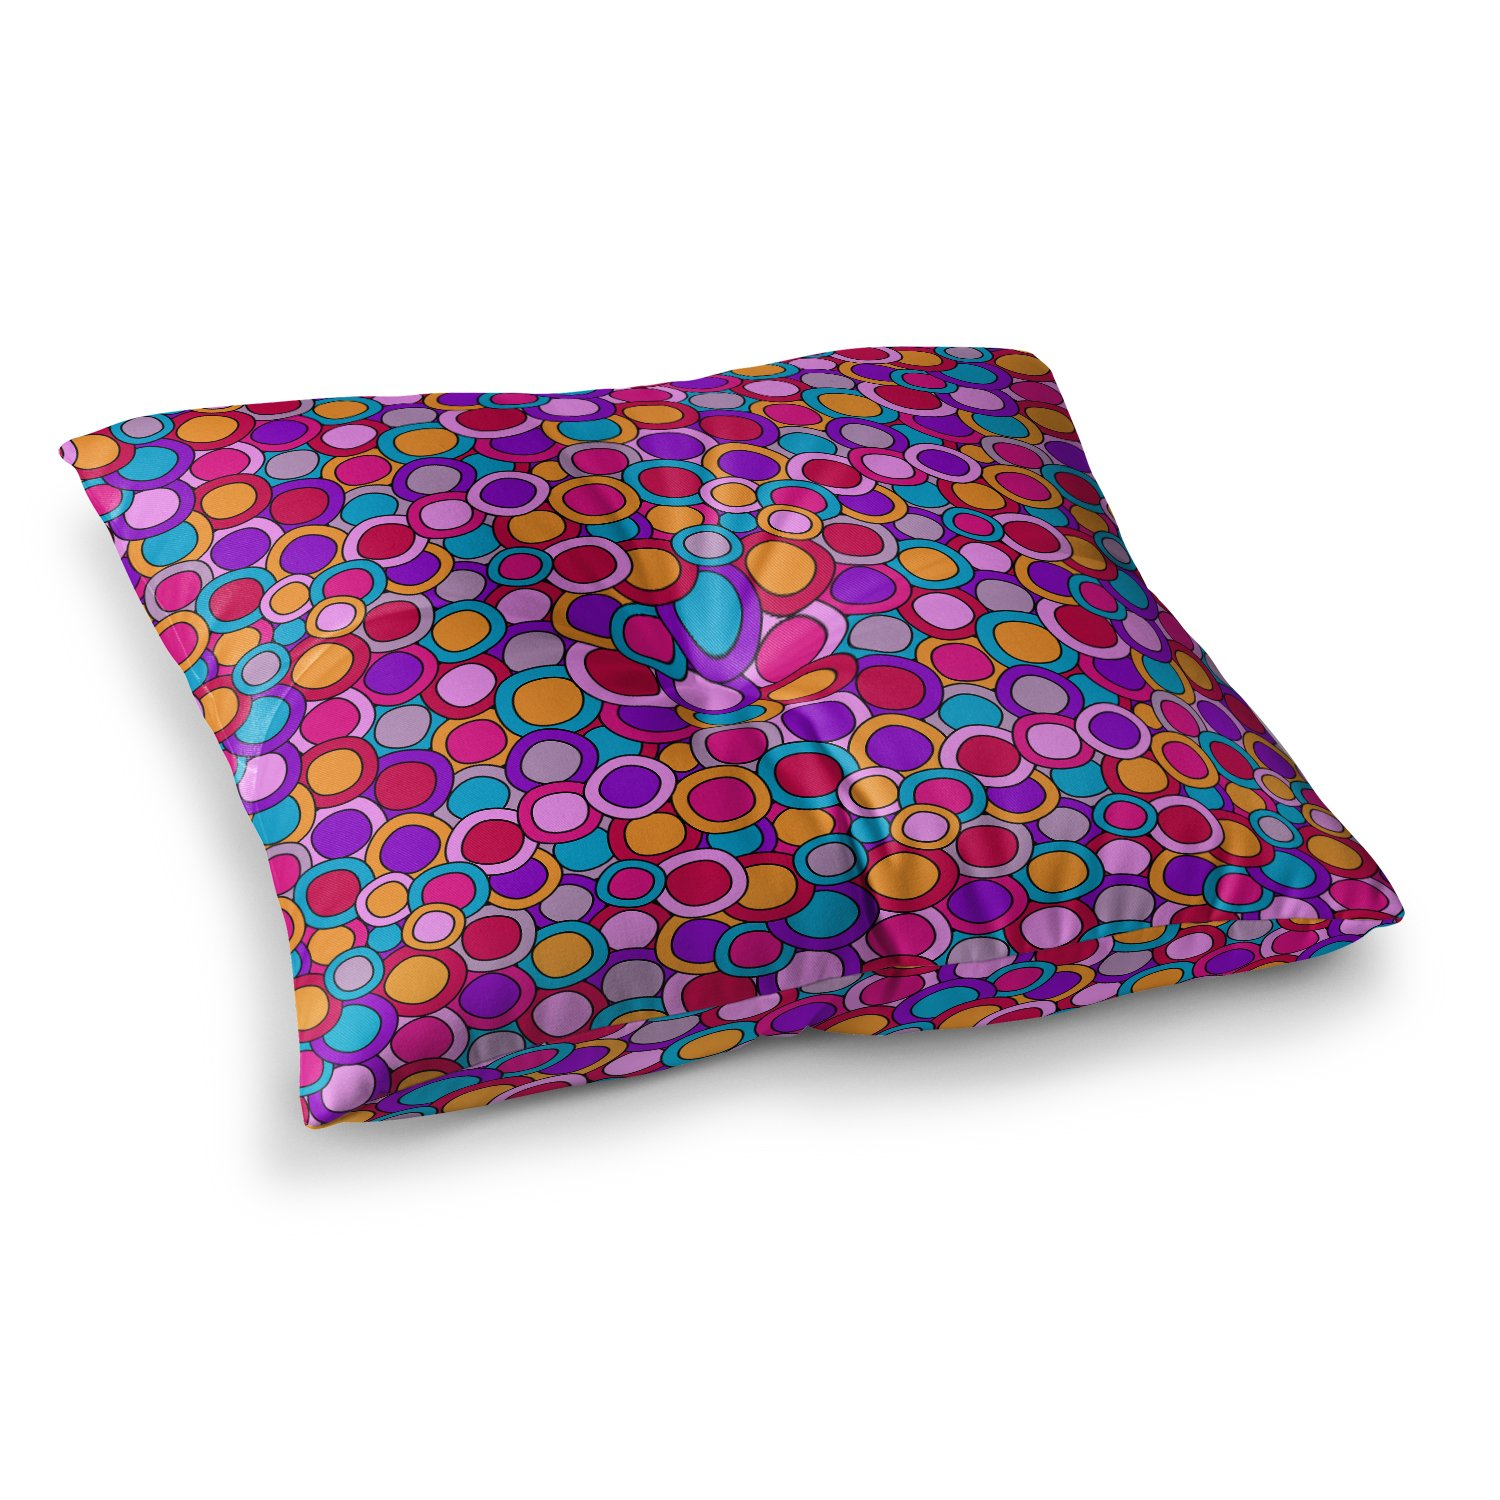 Kess InHouse Julia Grifol My Colourful Circles 26 x 26 Square Floor Pillow